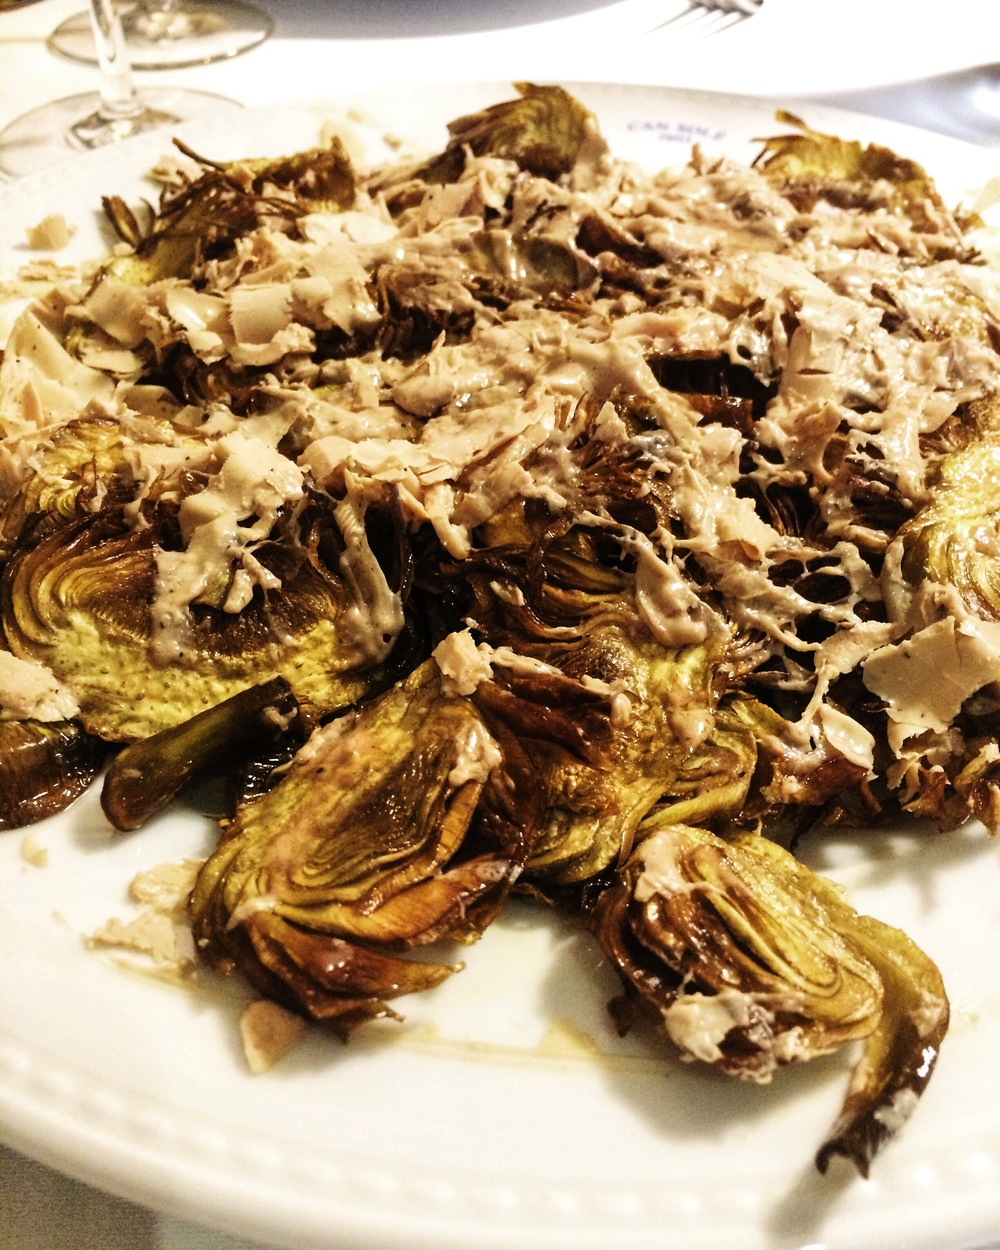 Fried artichoke with foie gras, Can Solé